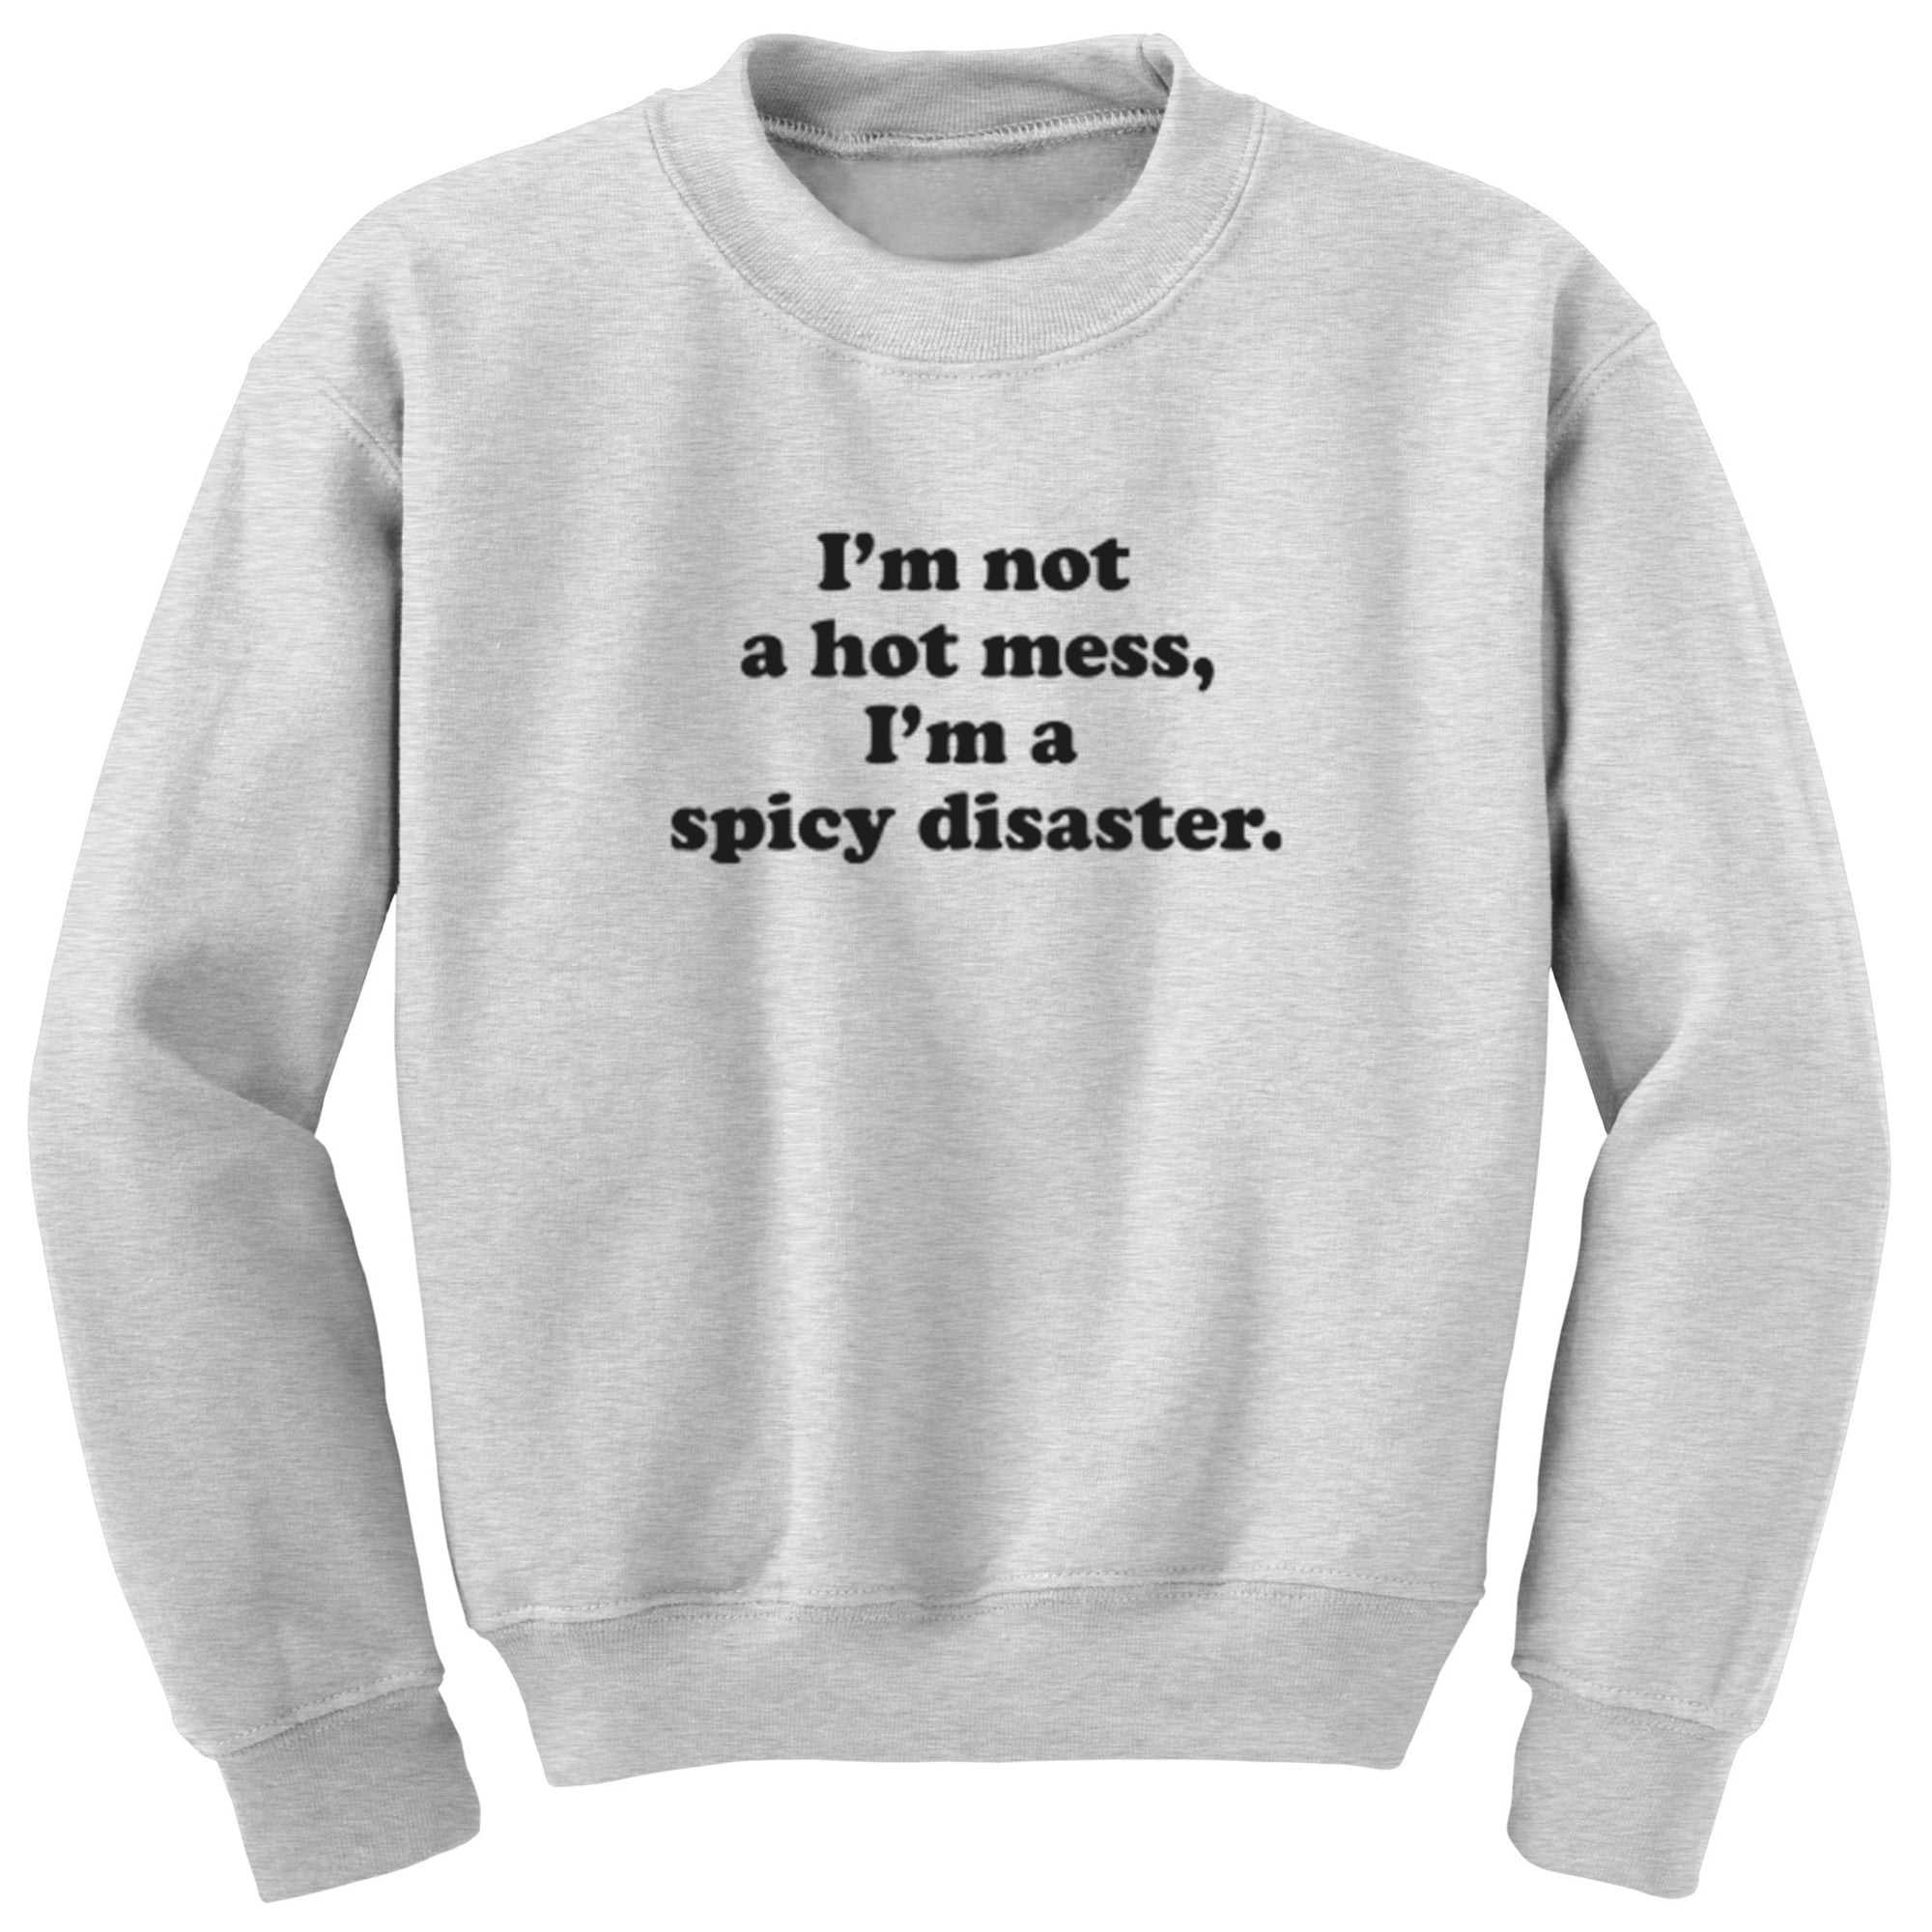 I'm Not A Hot Mess, I'm A Spicy Disaster Unisex Jumper S0913 - Illustrated Identity Ltd.